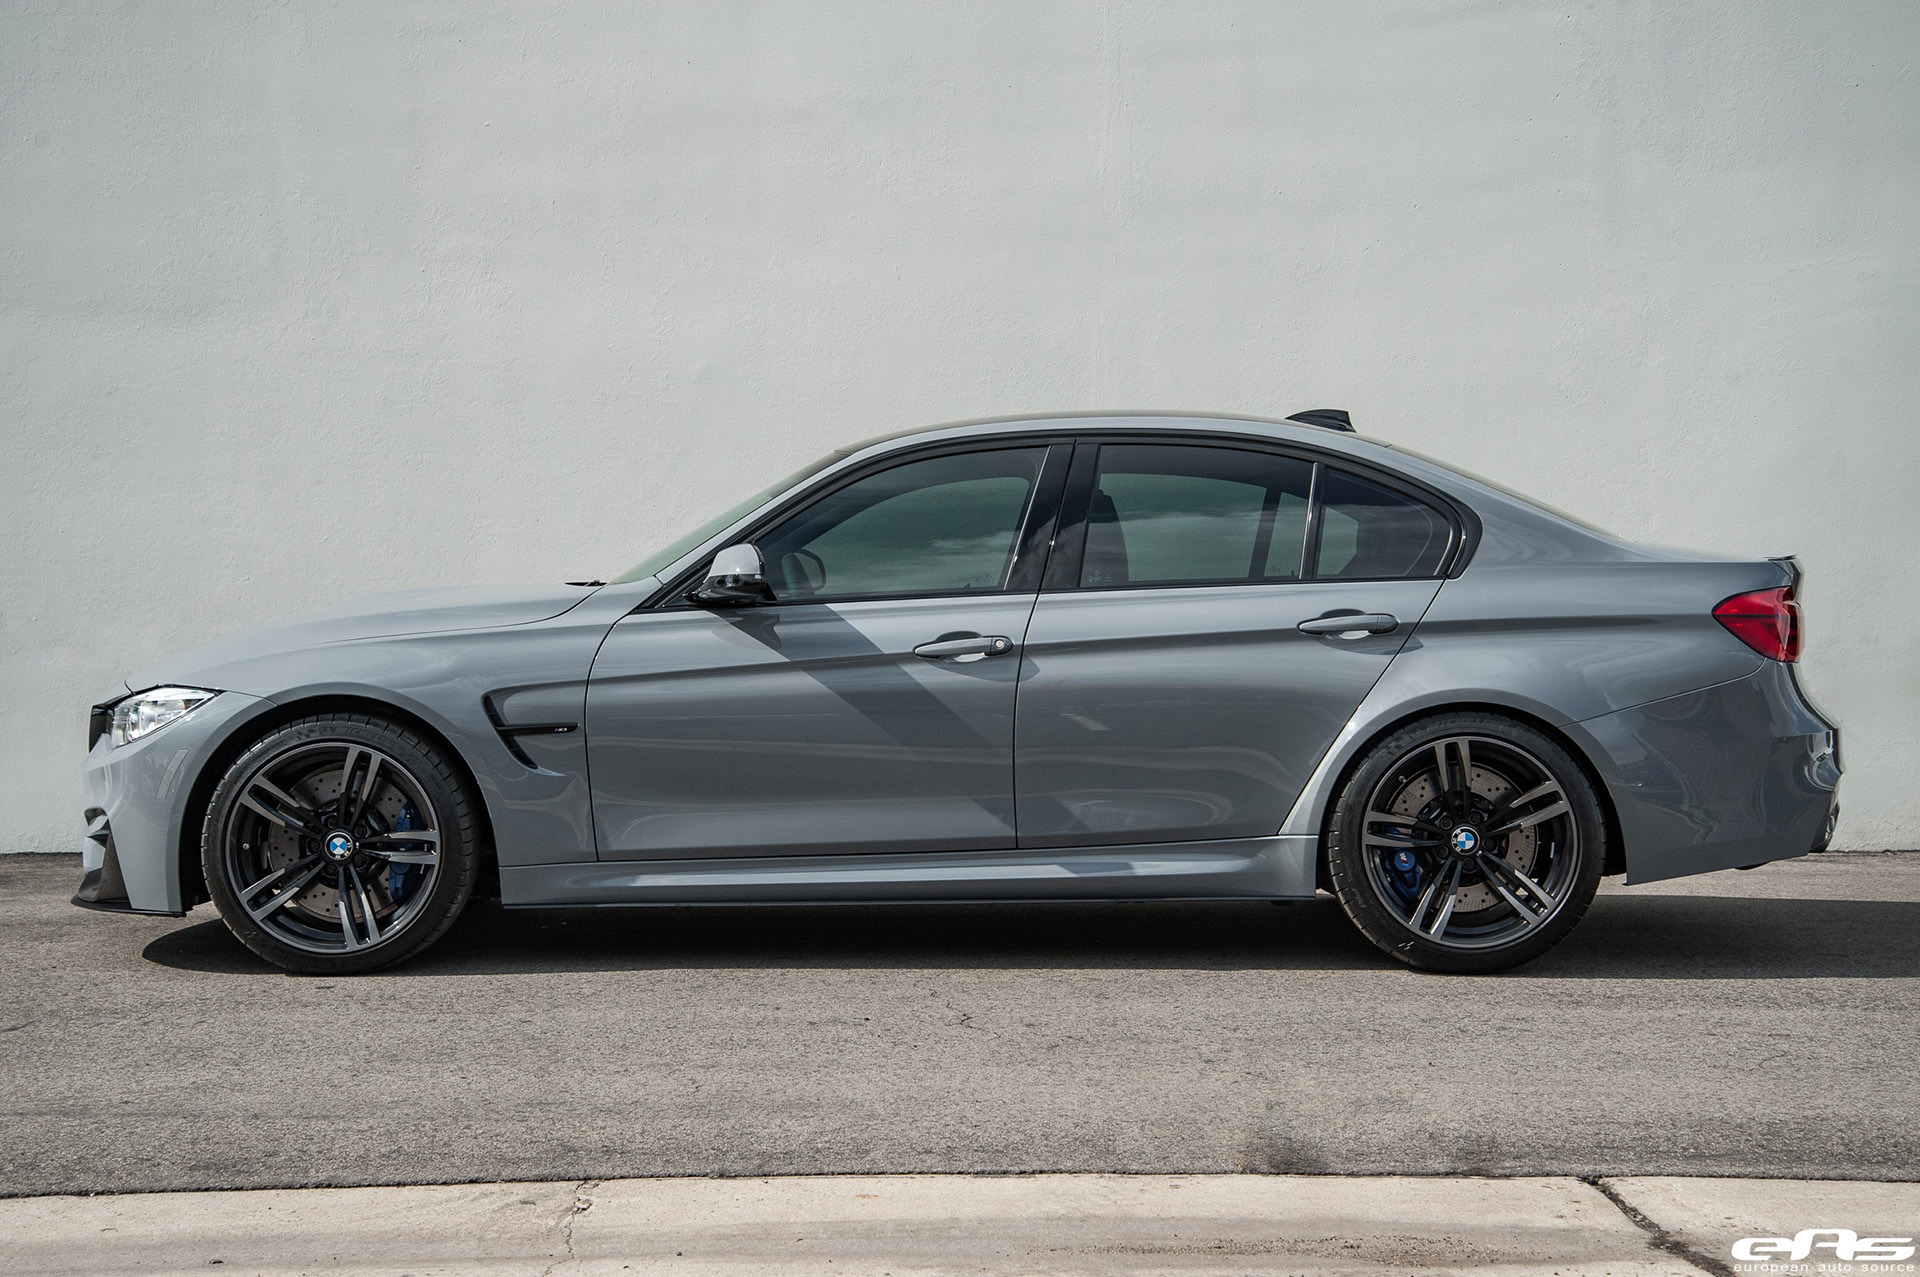 Nardo-Gray-BMW-F80-M3-Gets-Aftermarket-Upgrades-2